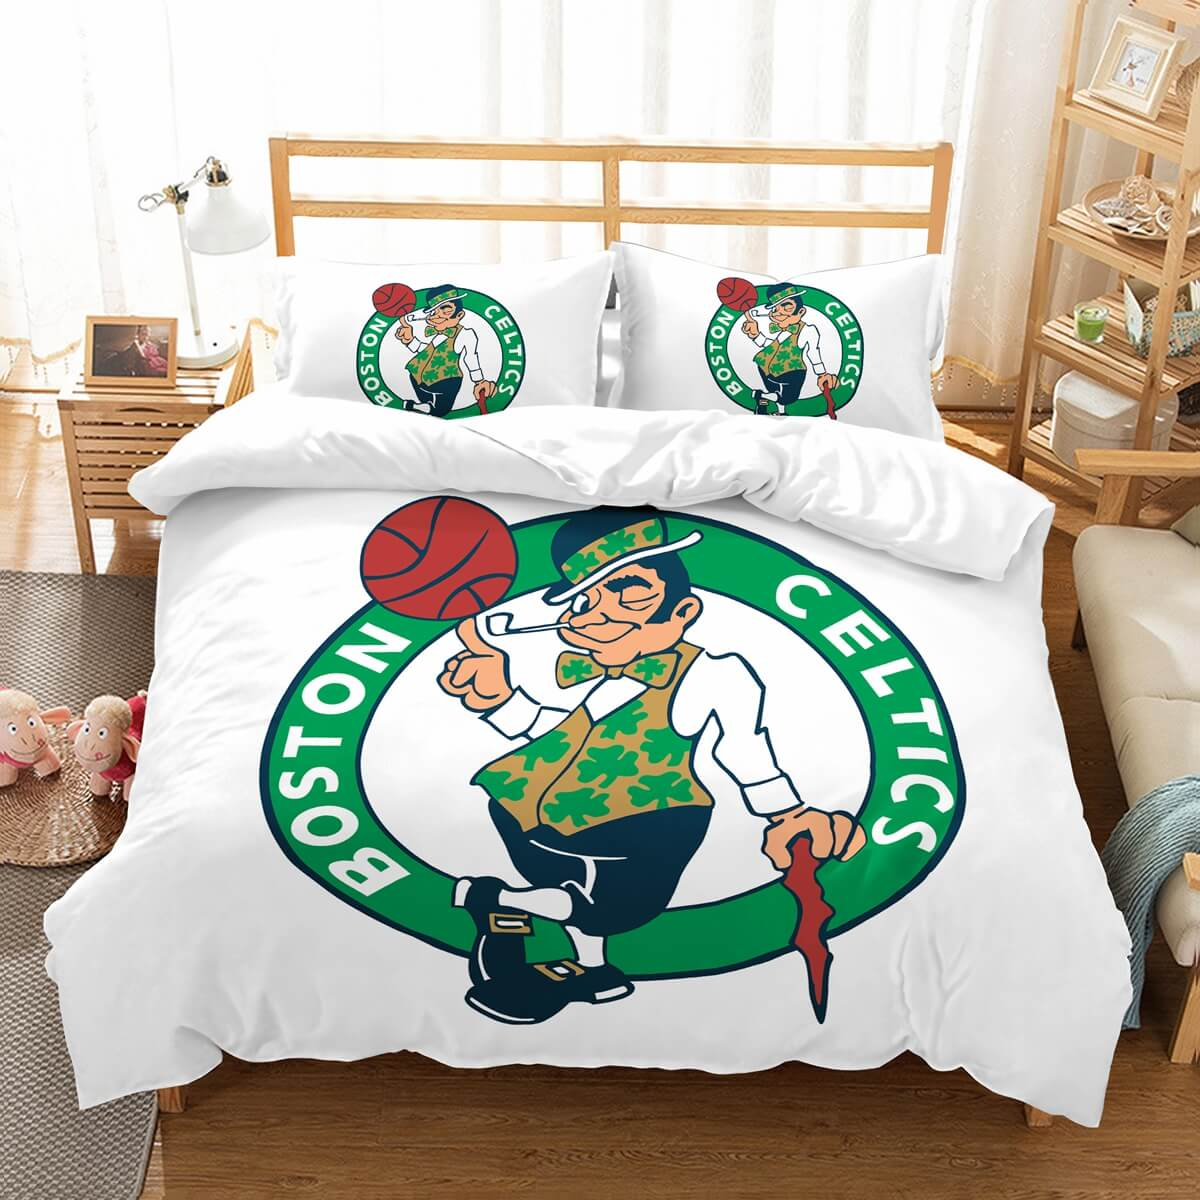 3D Customize Boston Celtics Bedding Set Duvet Cover Set Bedroom Set Bedlinen